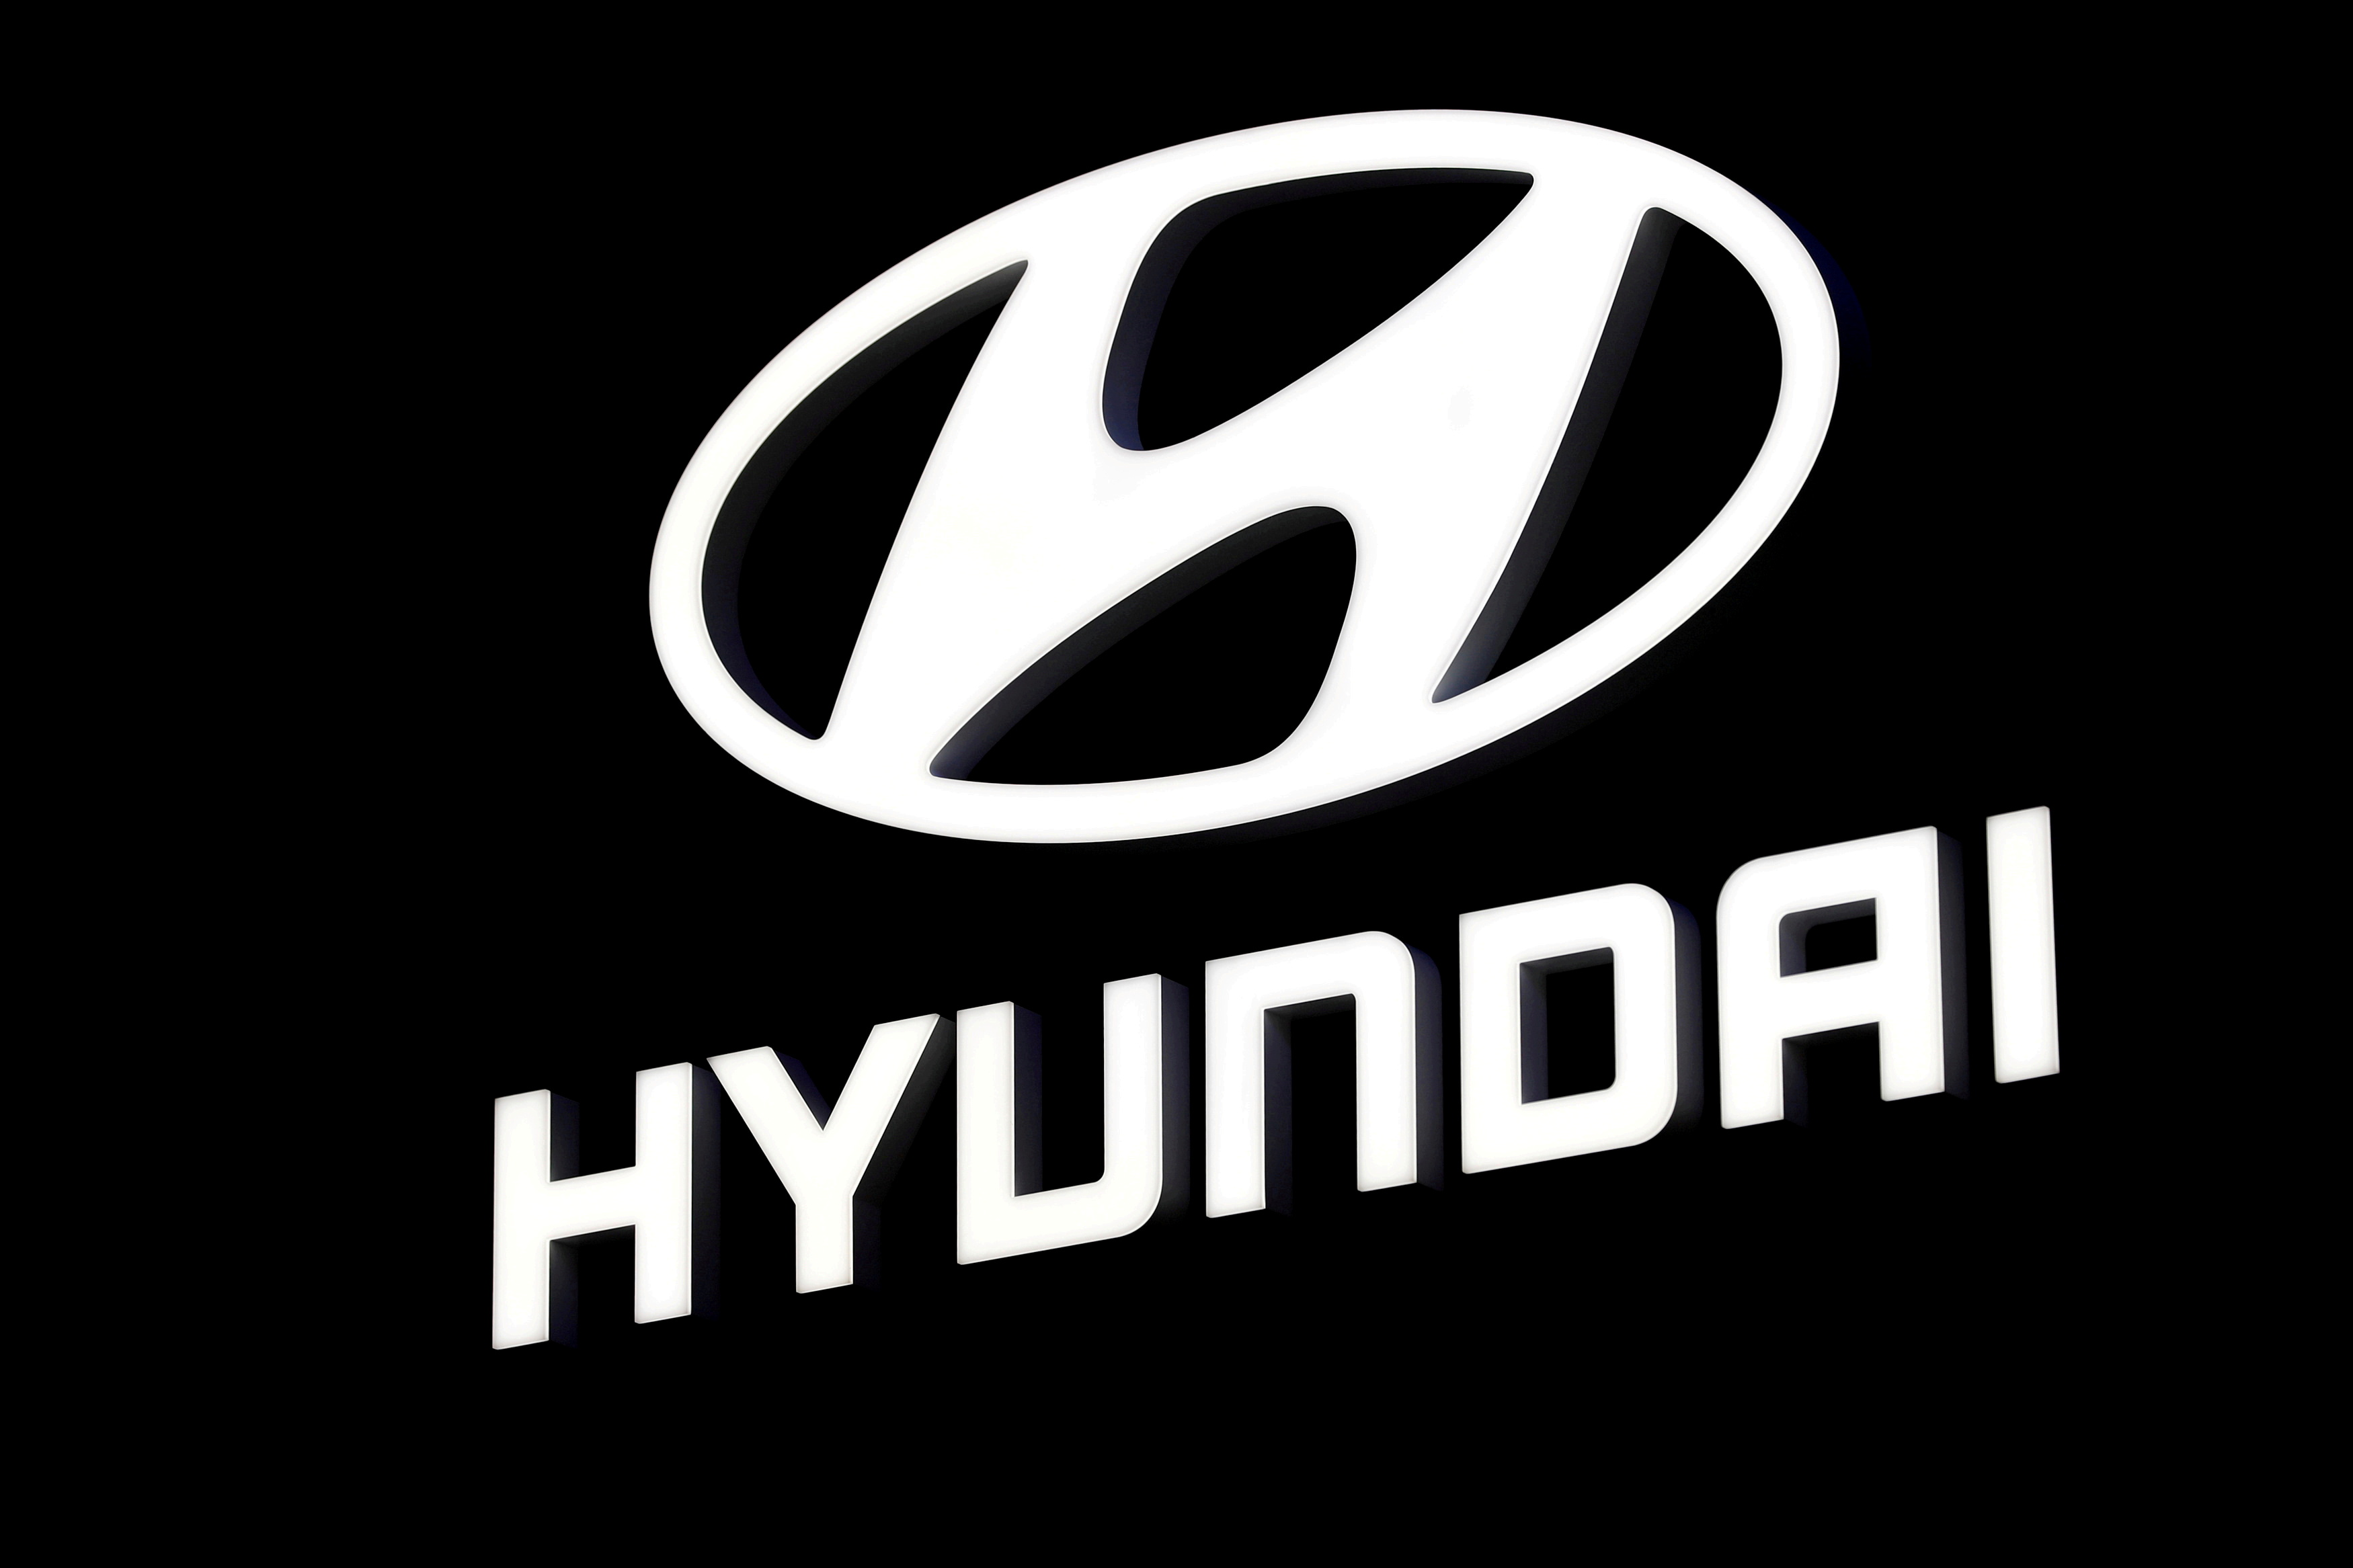 A Hyundai booth displays the company logo at the North American International Auto Show in Detroit, Michigan, U.S. January 16, 2018.  REUTERS/Jonathan Ernst/Files